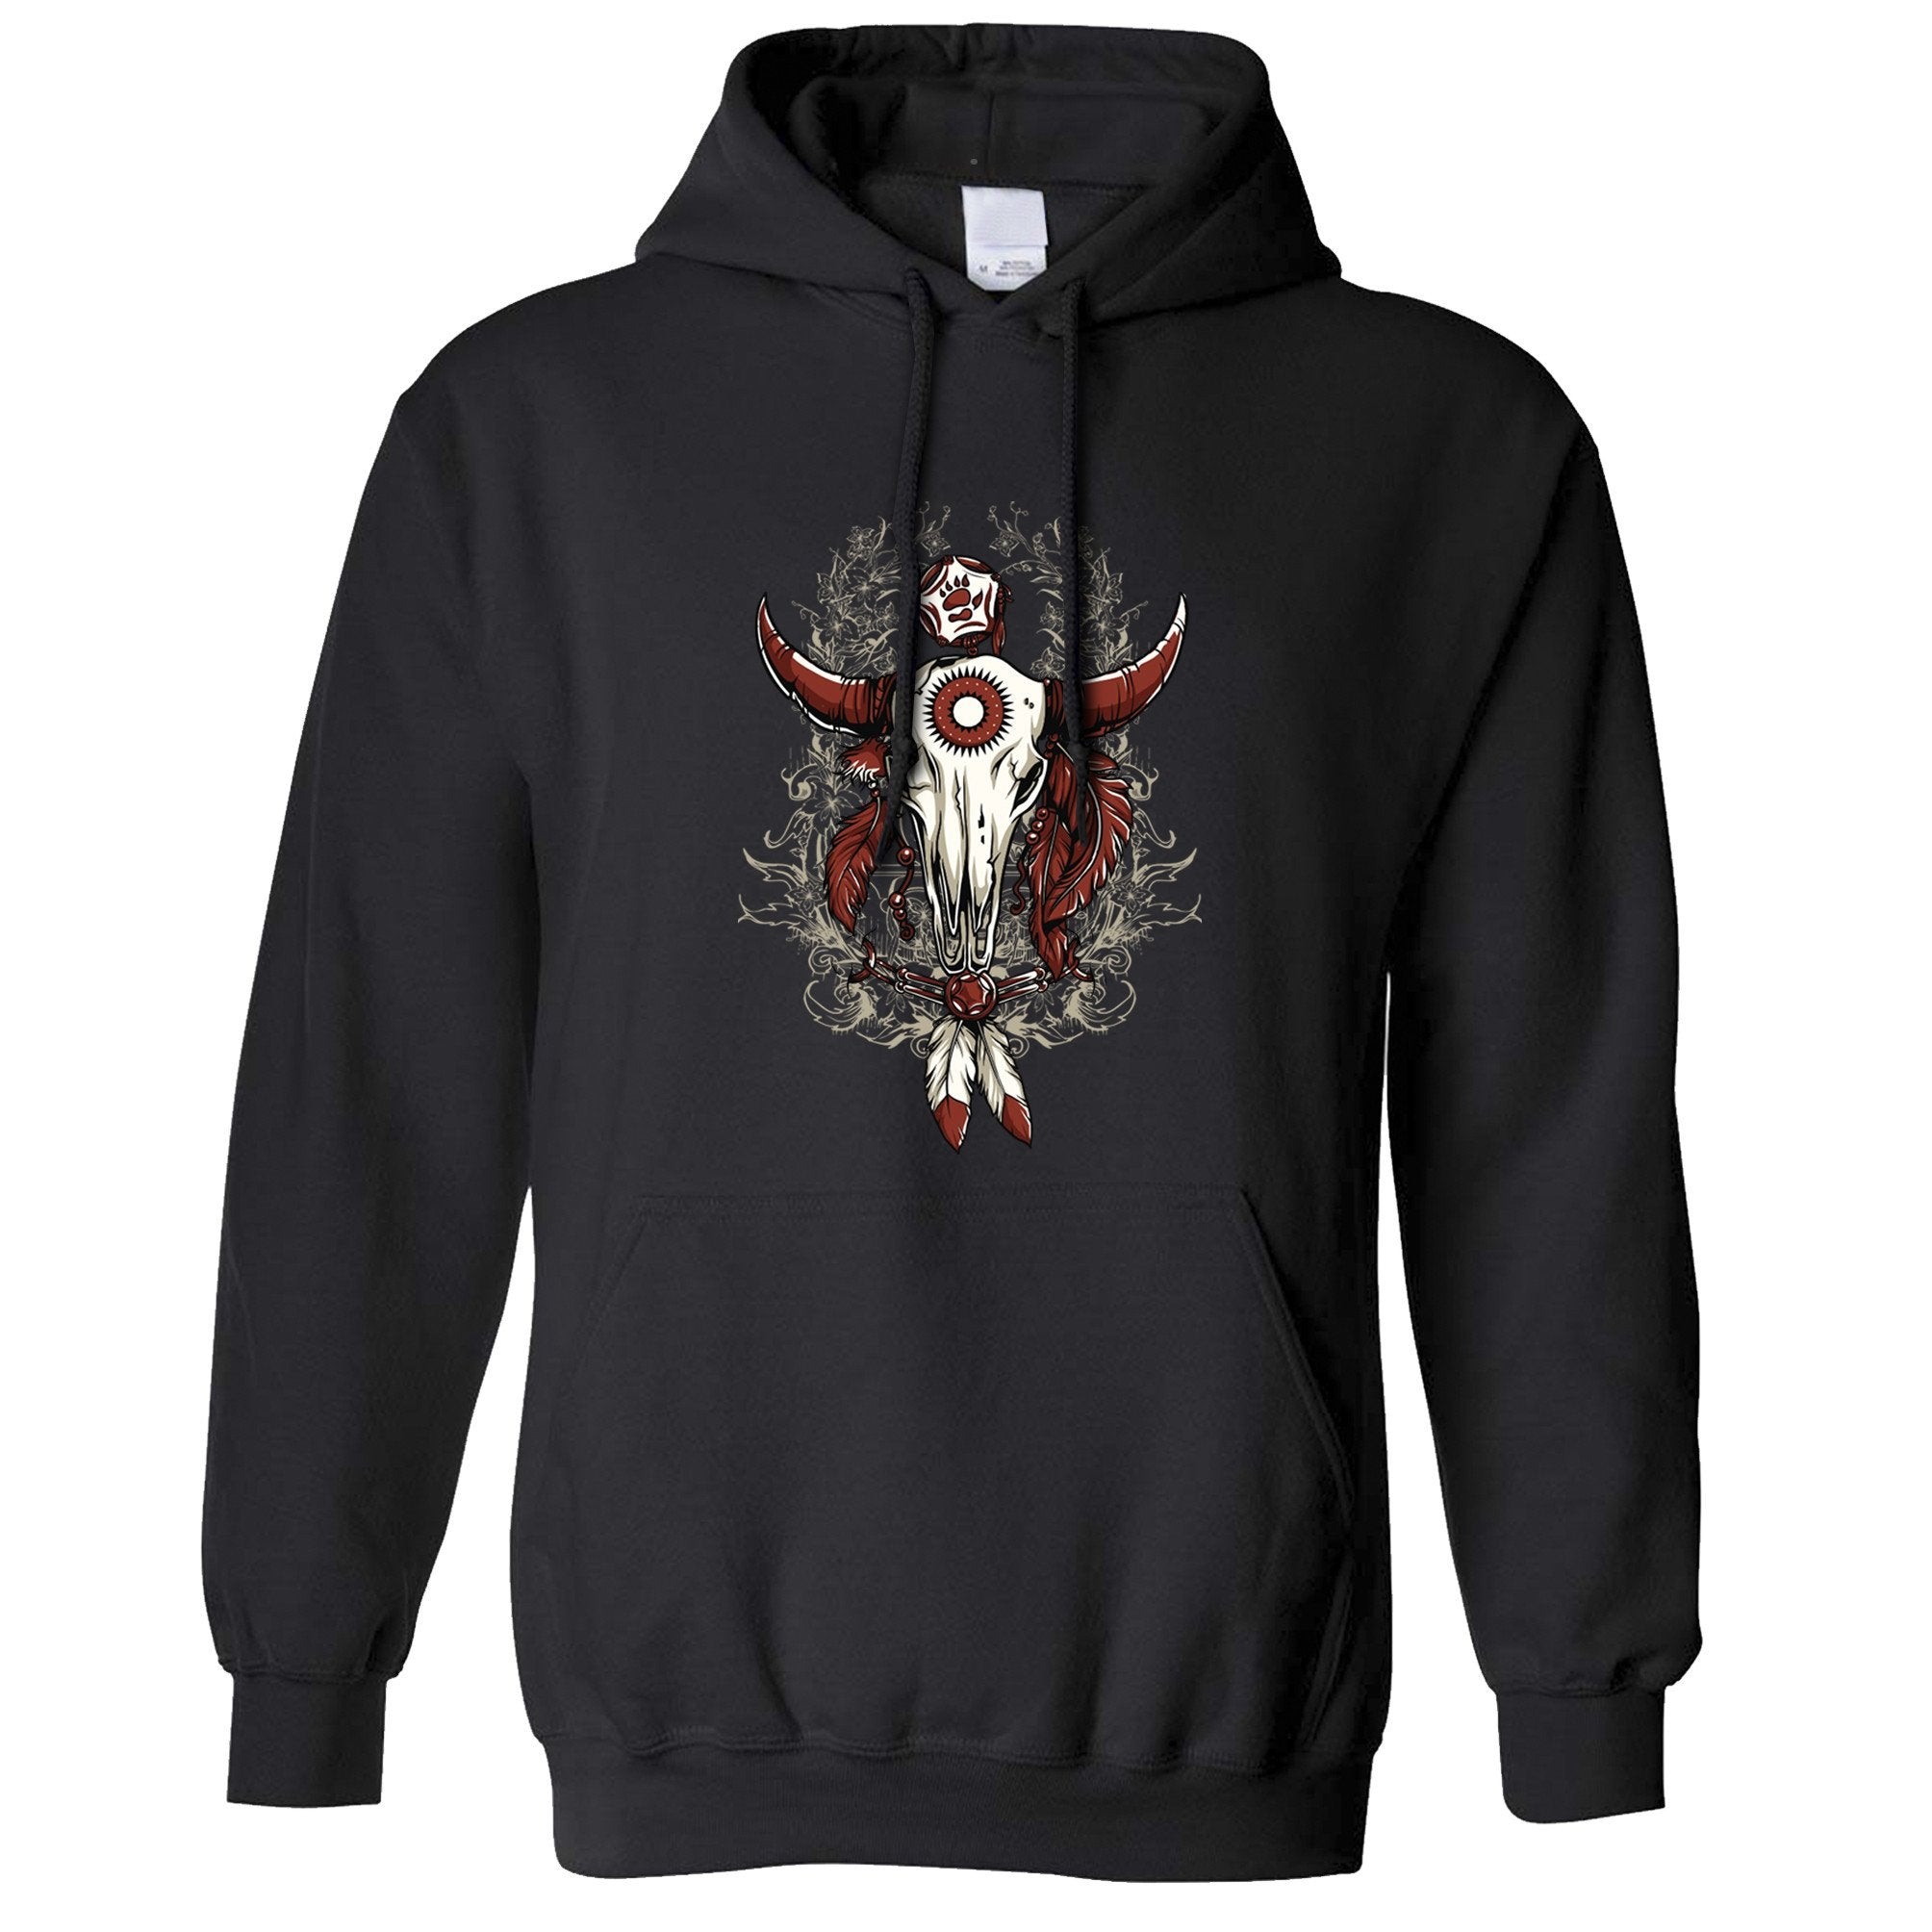 Native American Art Hoodie Bull Skull and Feathers Hooded Jumper